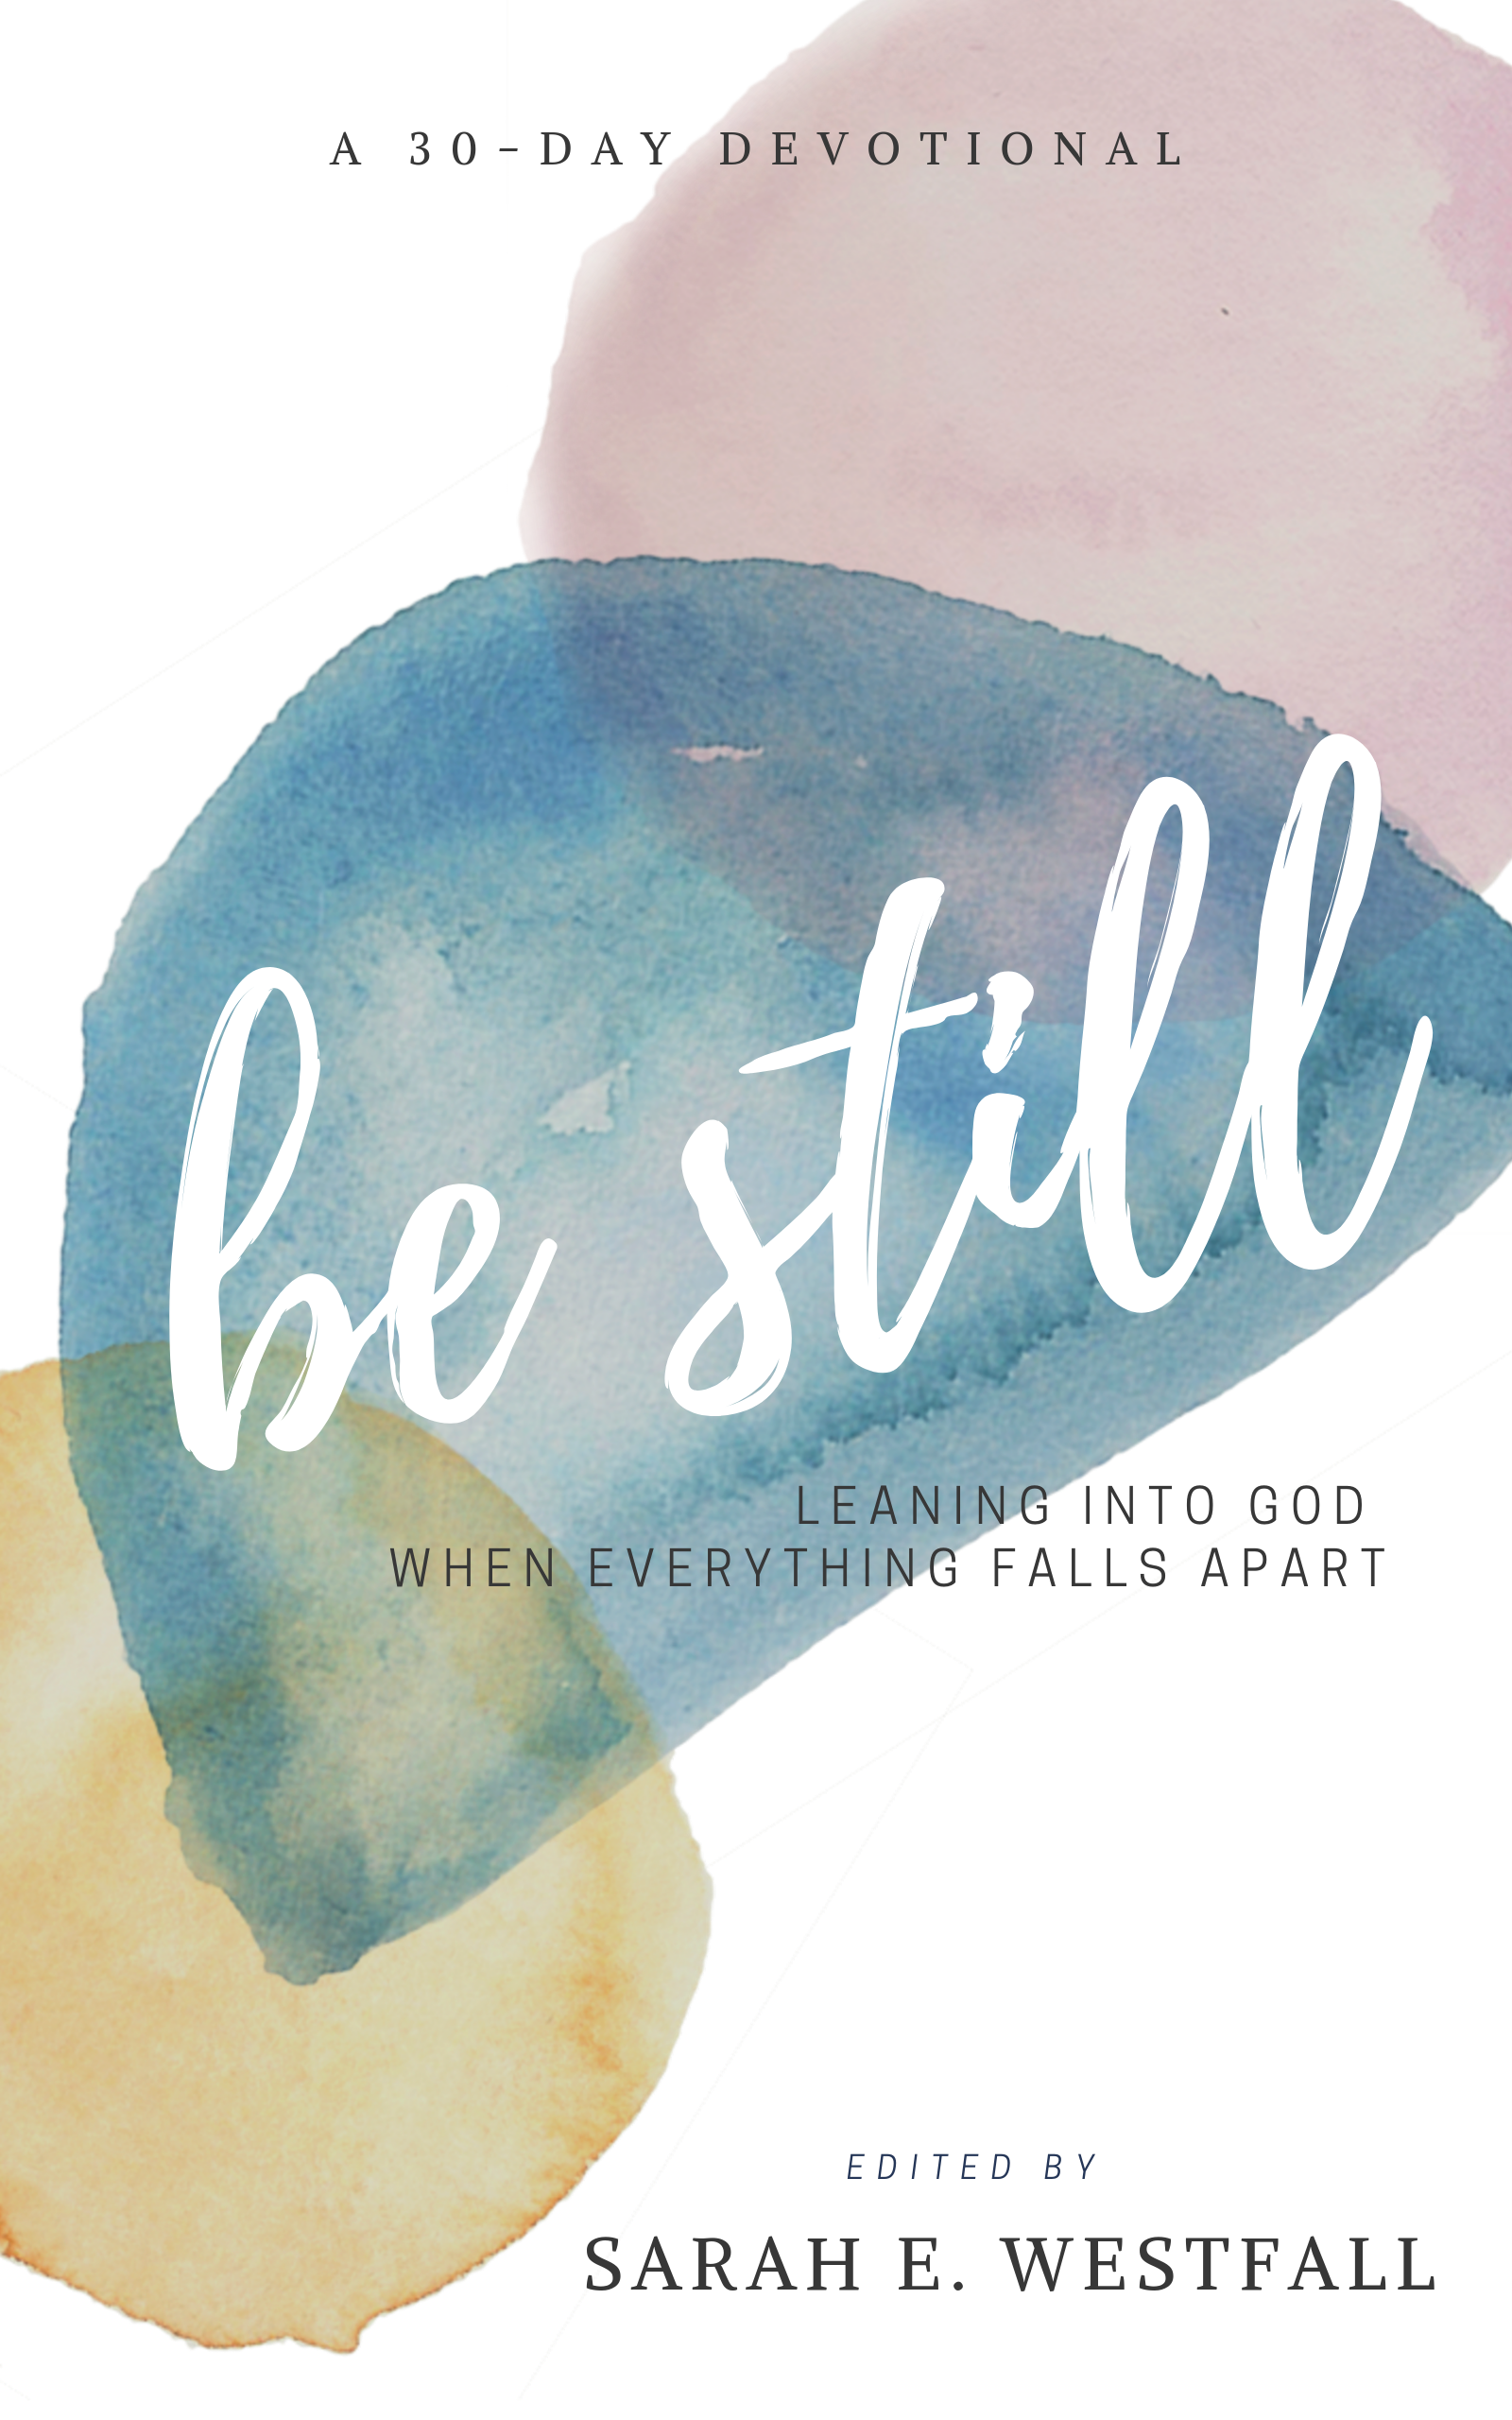 available Oct. 15 - Get FREE digital access to the new thirty-day devotional Be Still by joining my mailing list before launch day!